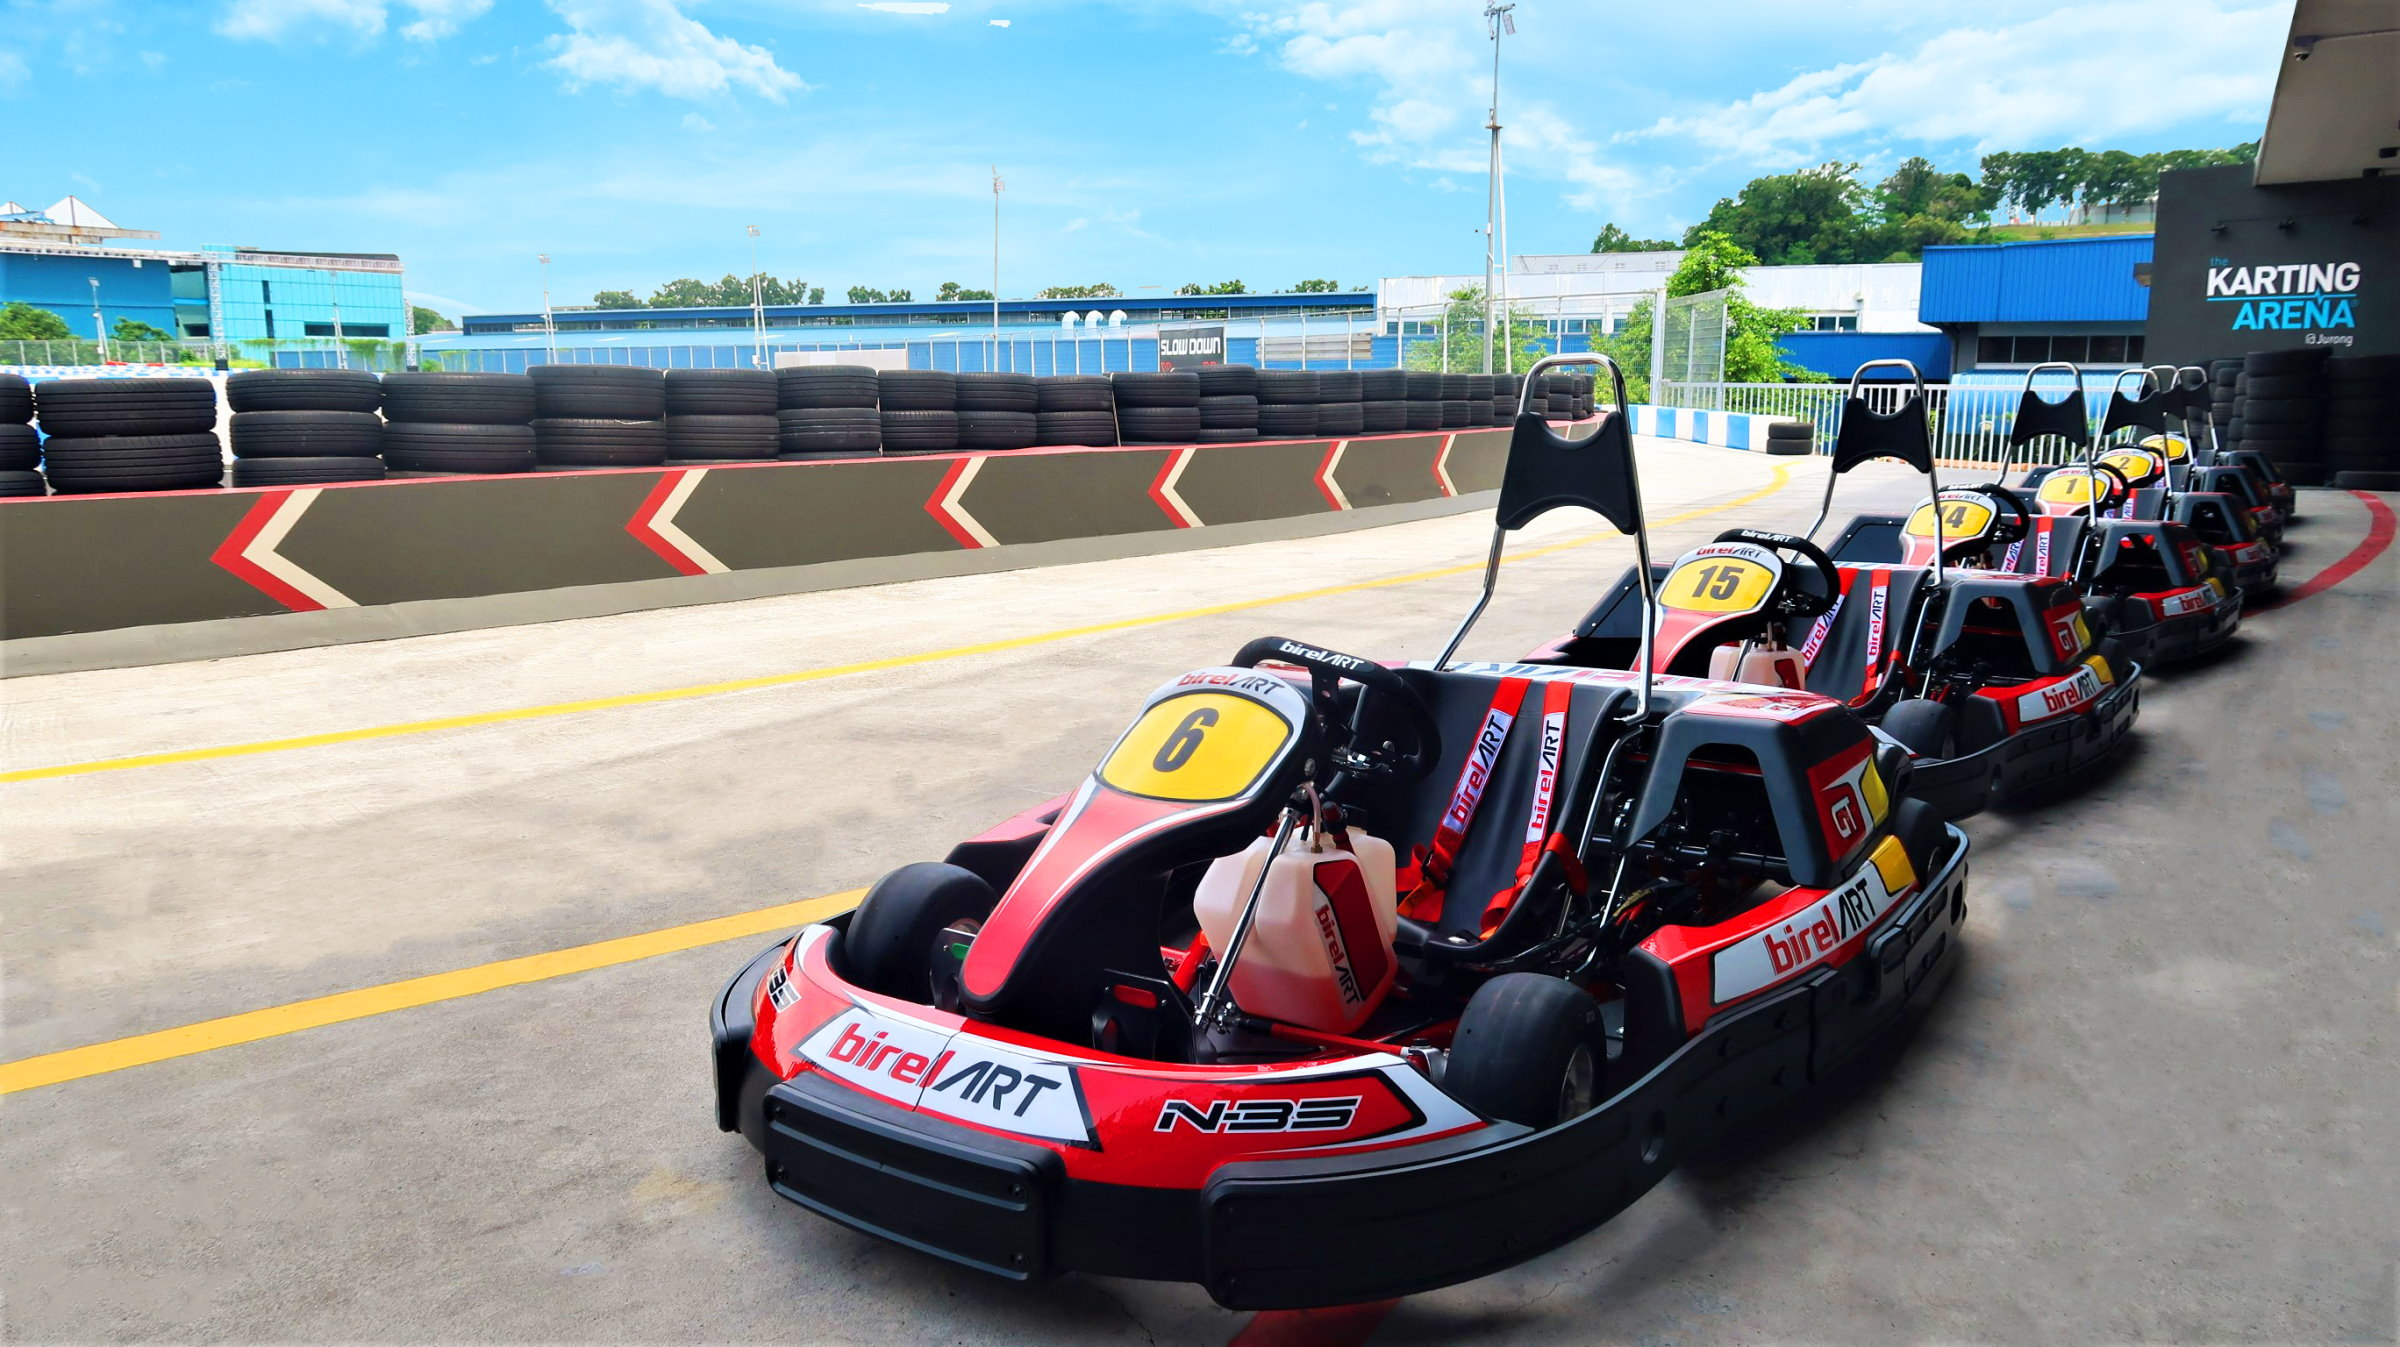 The Karting Arena To Open Its Second Track, This Time In Jurong